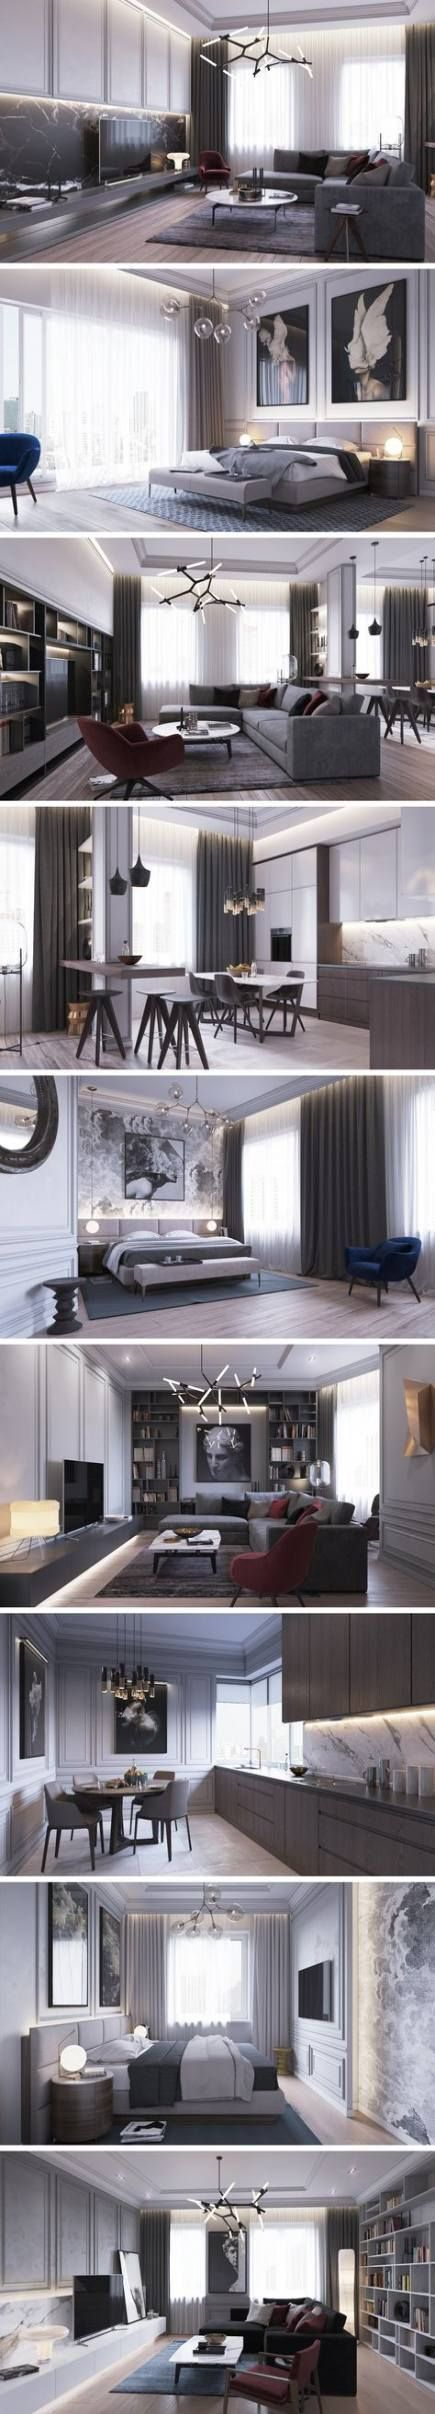 Apartment decorating inspiration classy 51 ideas